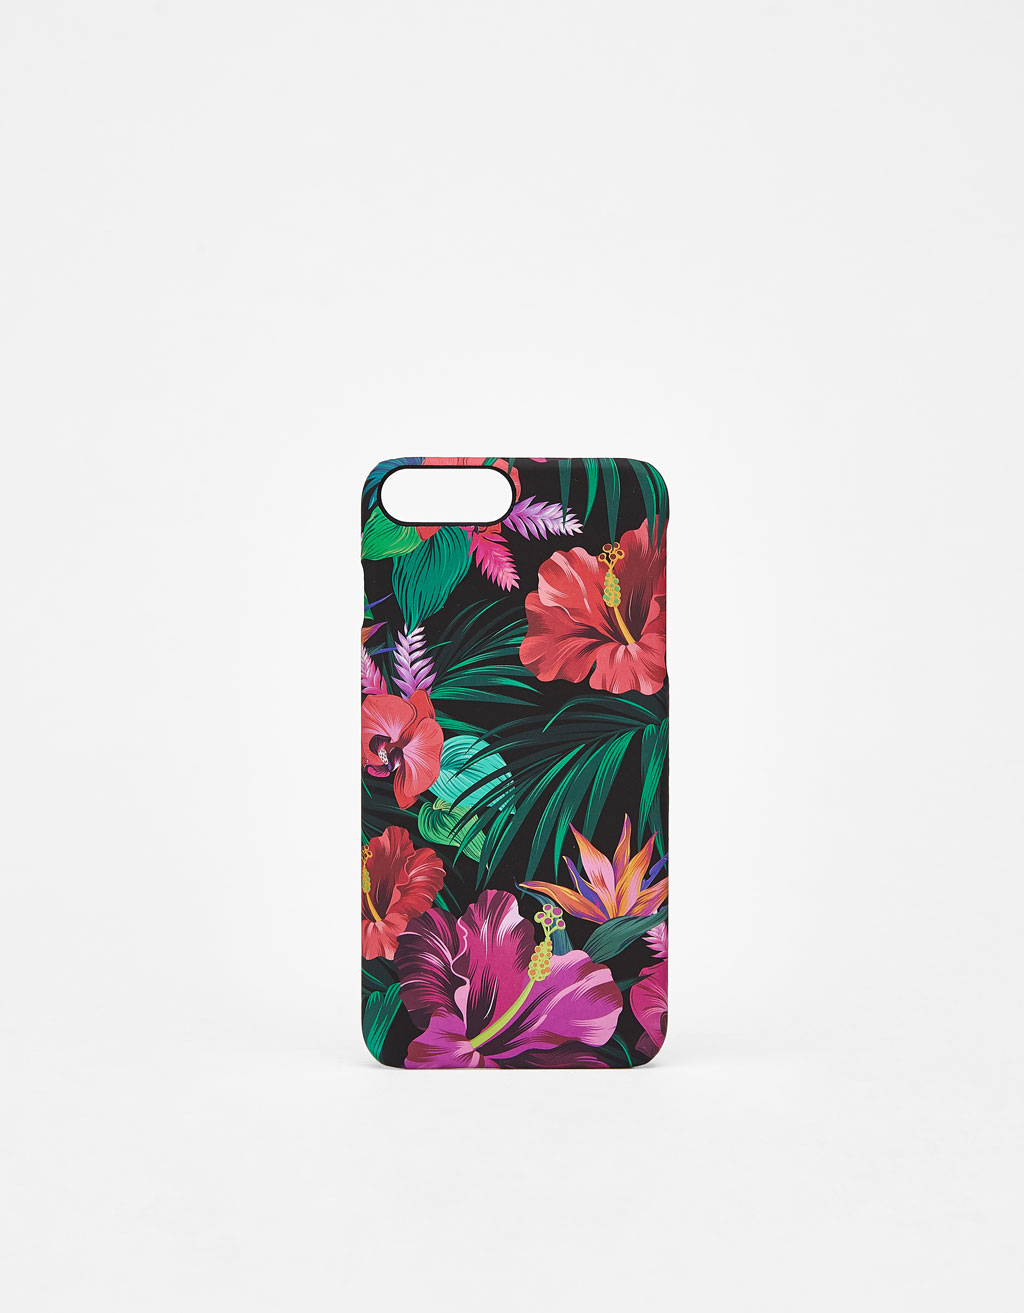 Tropical flower iPhone 6 Plus/7 Plus/8 Plus case